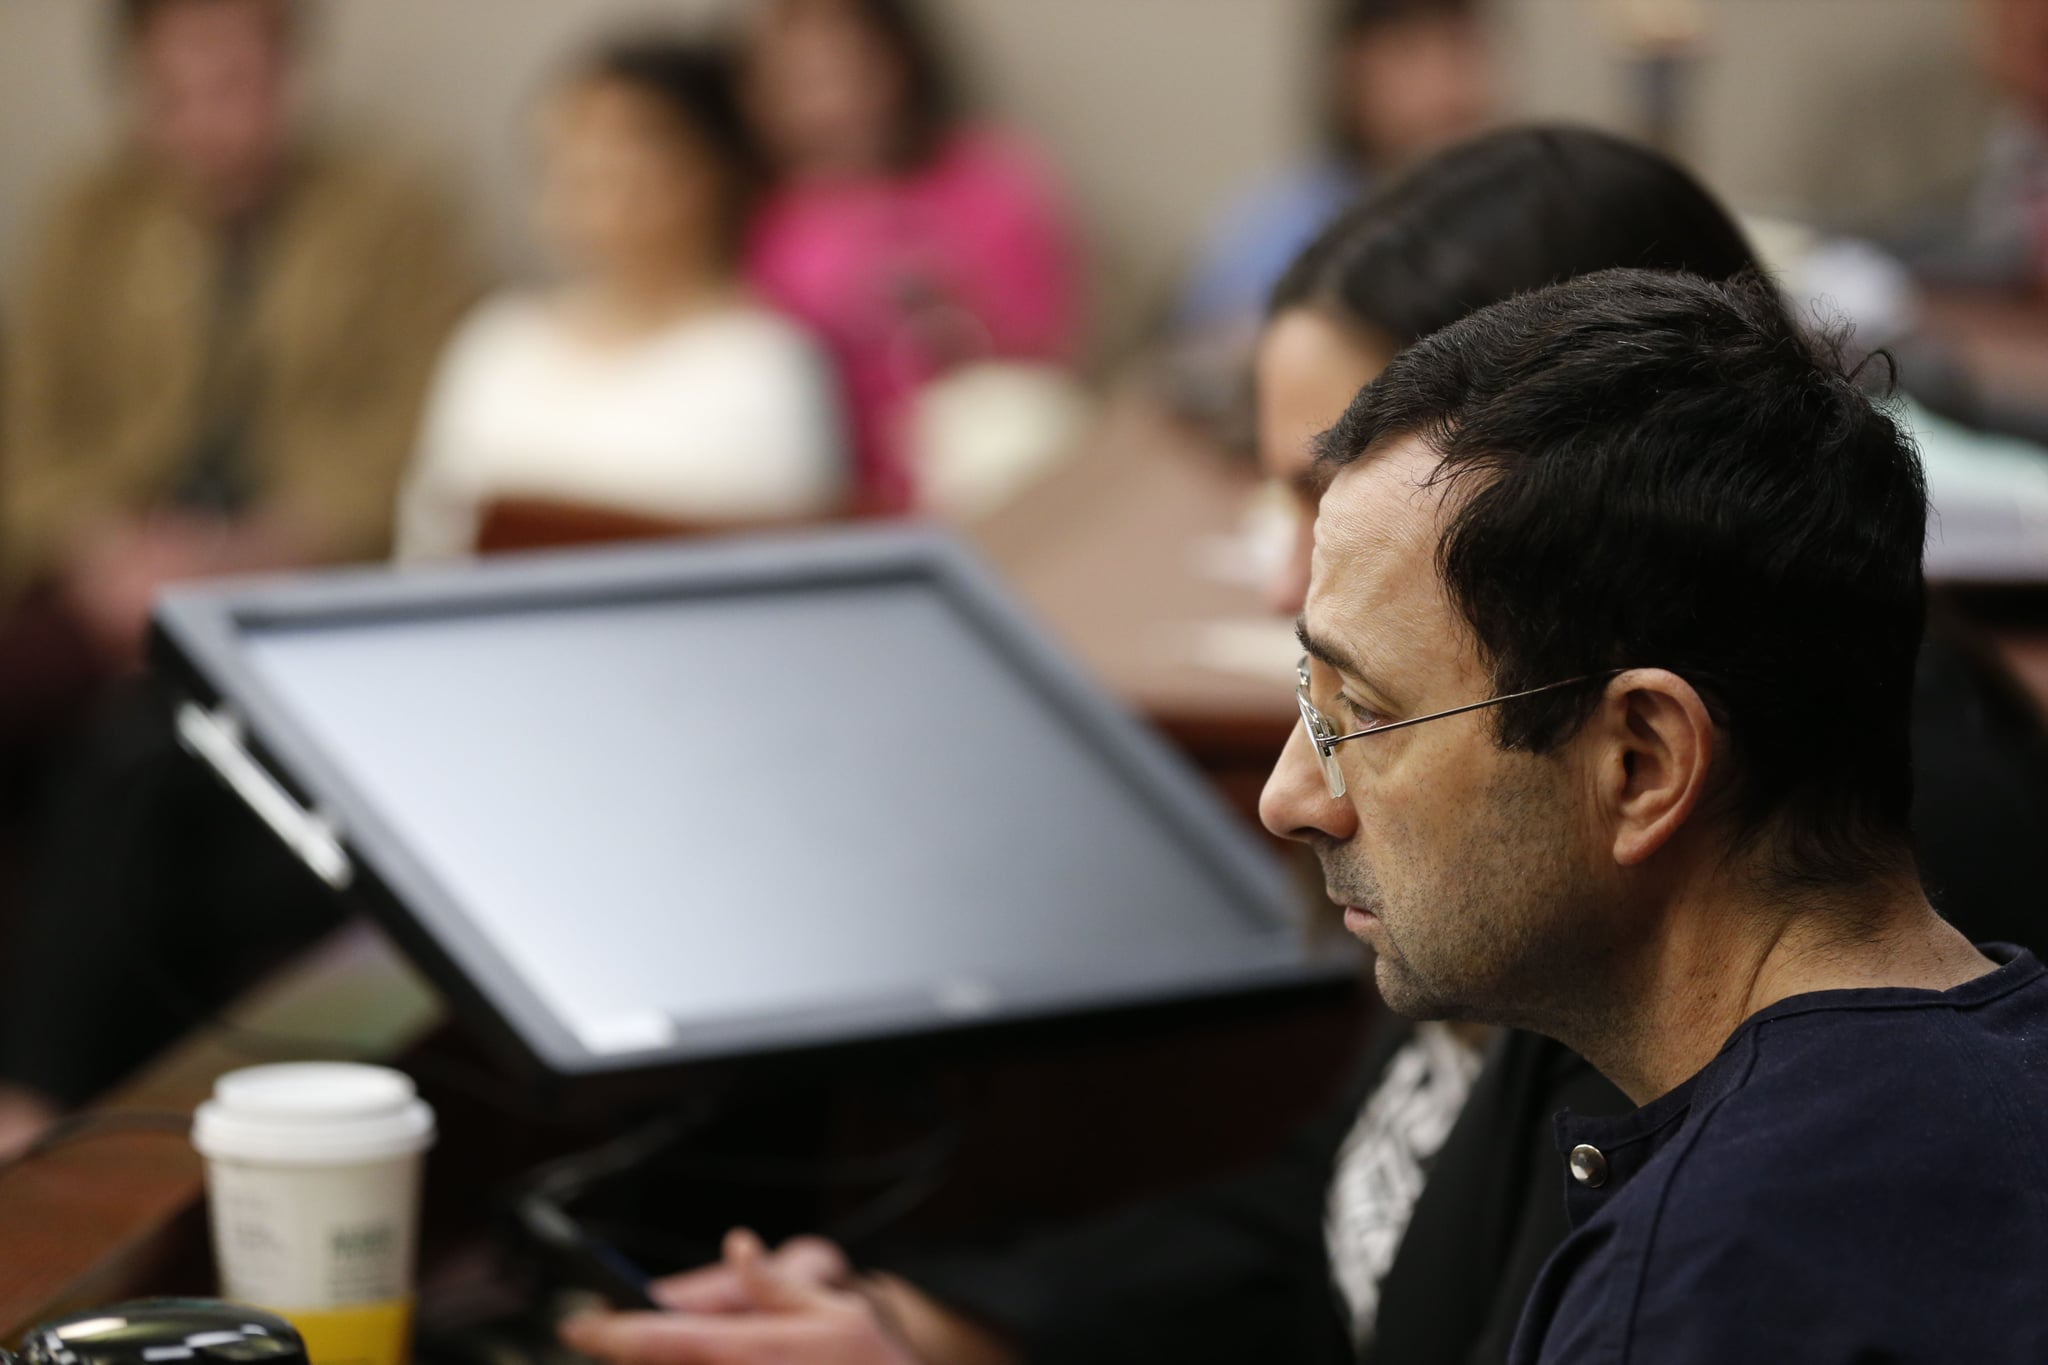 Former Michigan State University and USA Gymnastics doctor Larry Nassar gives an impact statement during the sentencing phase in Ingham County Circuit Court on January 24, 2018 in Lansing, Michigan.More than 100 women and girls accuse Nassar of a pattern of serial abuse dating back two decades, including the Olympic gold-medal winners Simone Biles, Aly Raisman, Gabby Douglas and McKayla Maroney -- who have lashed out at top sporting officials for failing to stop him.    / AFP PHOTO / JEFF KOWALSKY        (Photo credit should read JEFF KOWALSKY/AFP via Getty Images)